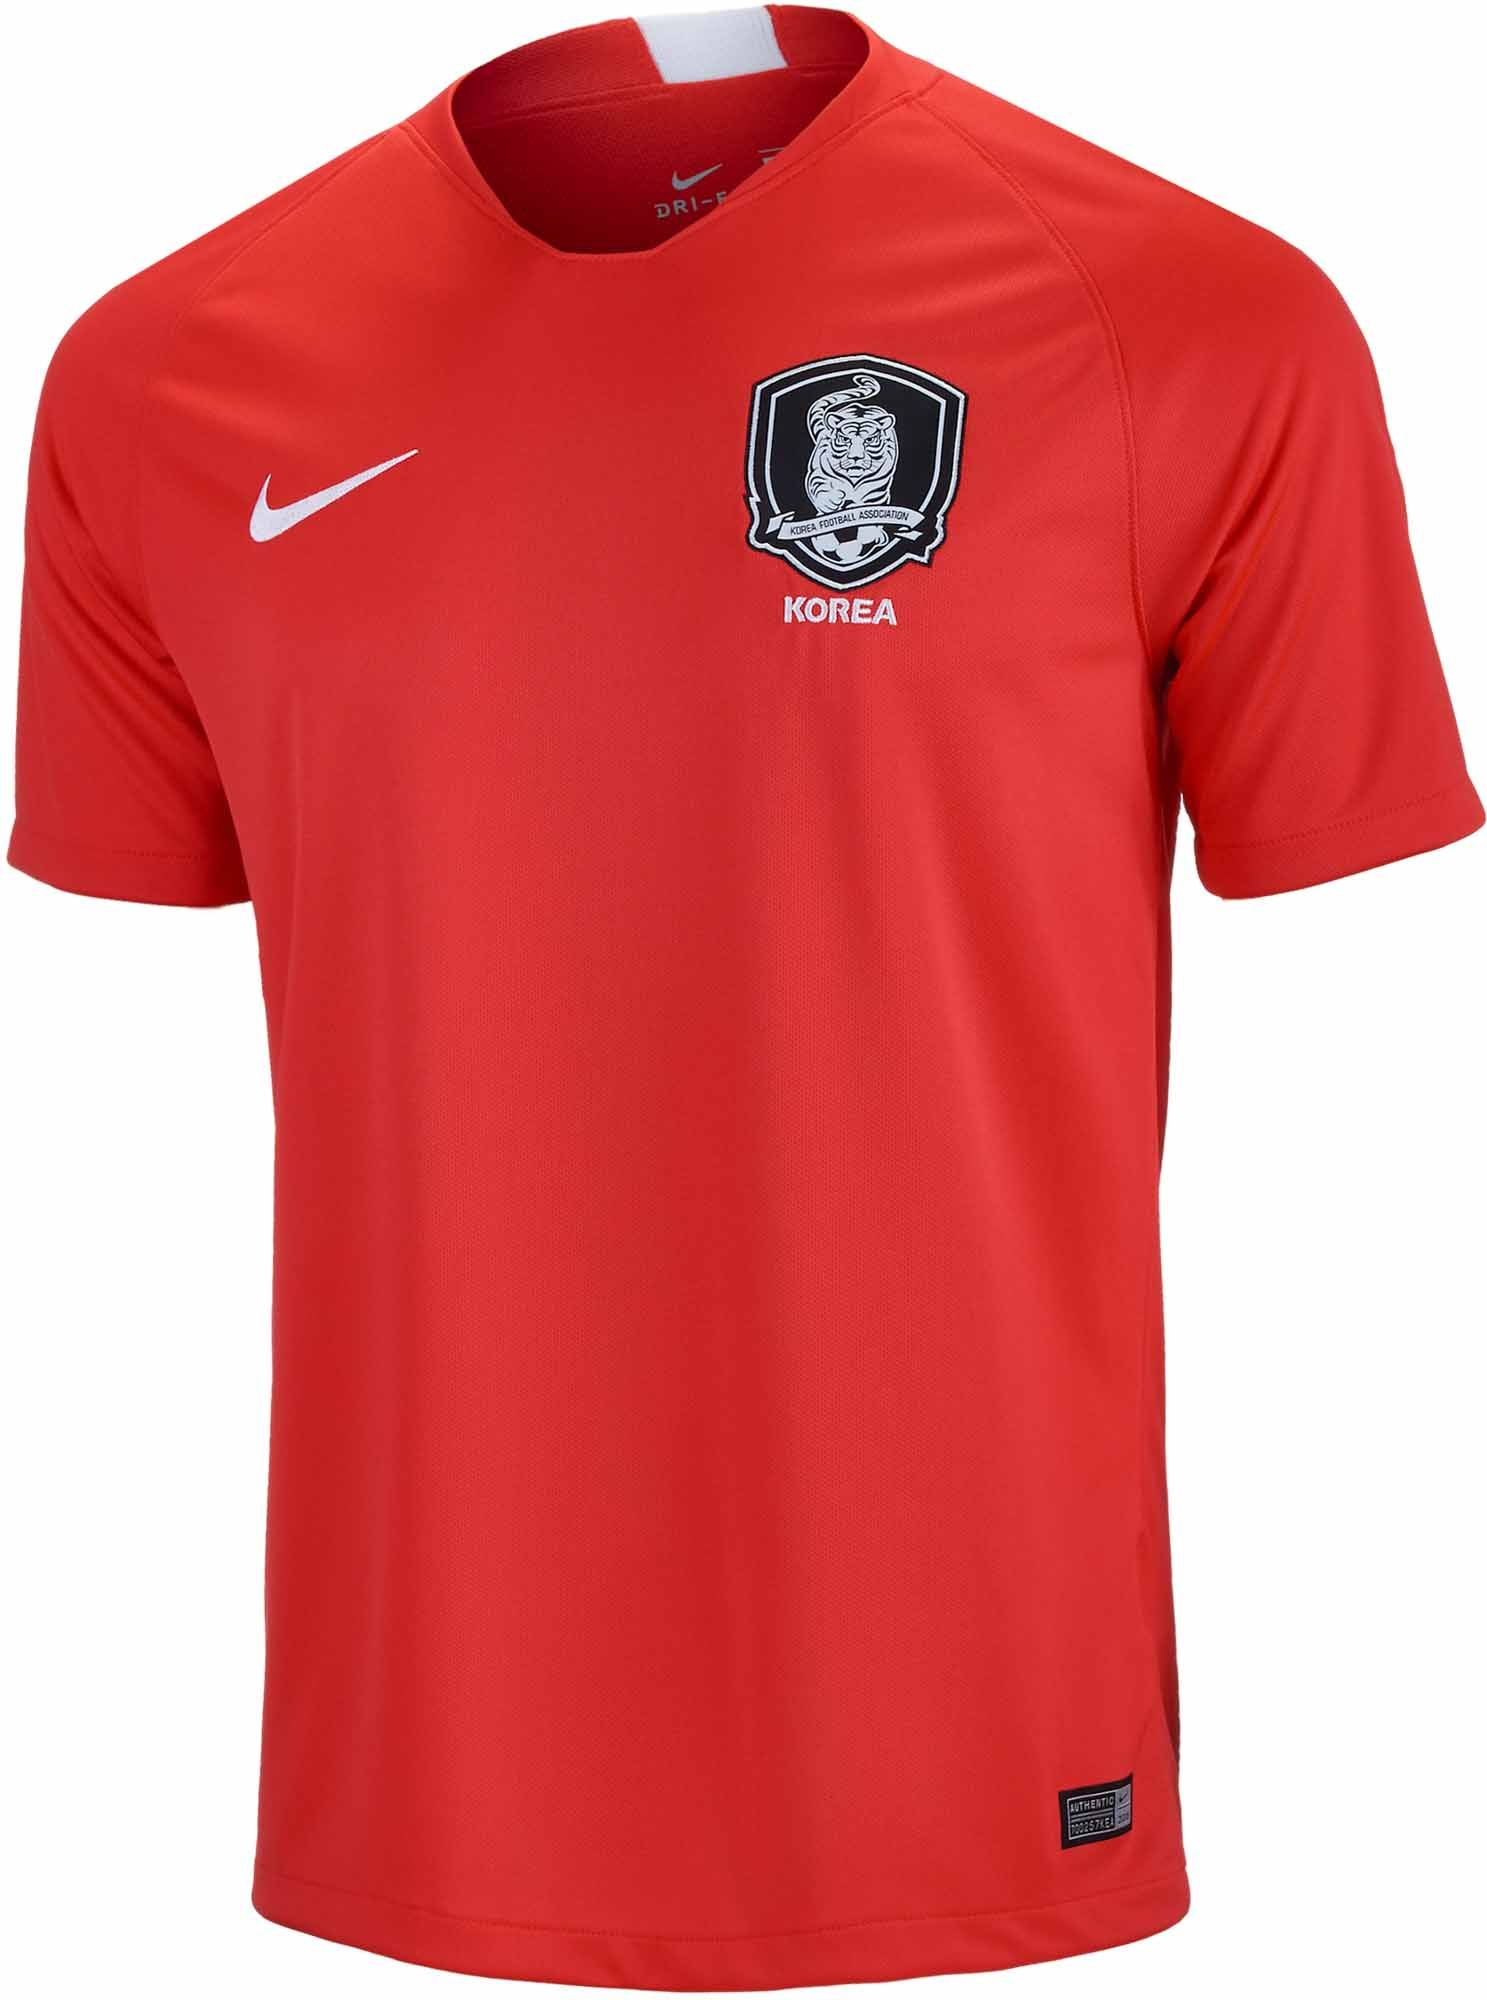 f63c217ee 2018 19 Nike South Korea Home Jersey. Buy yours now from www.soccerpro.com